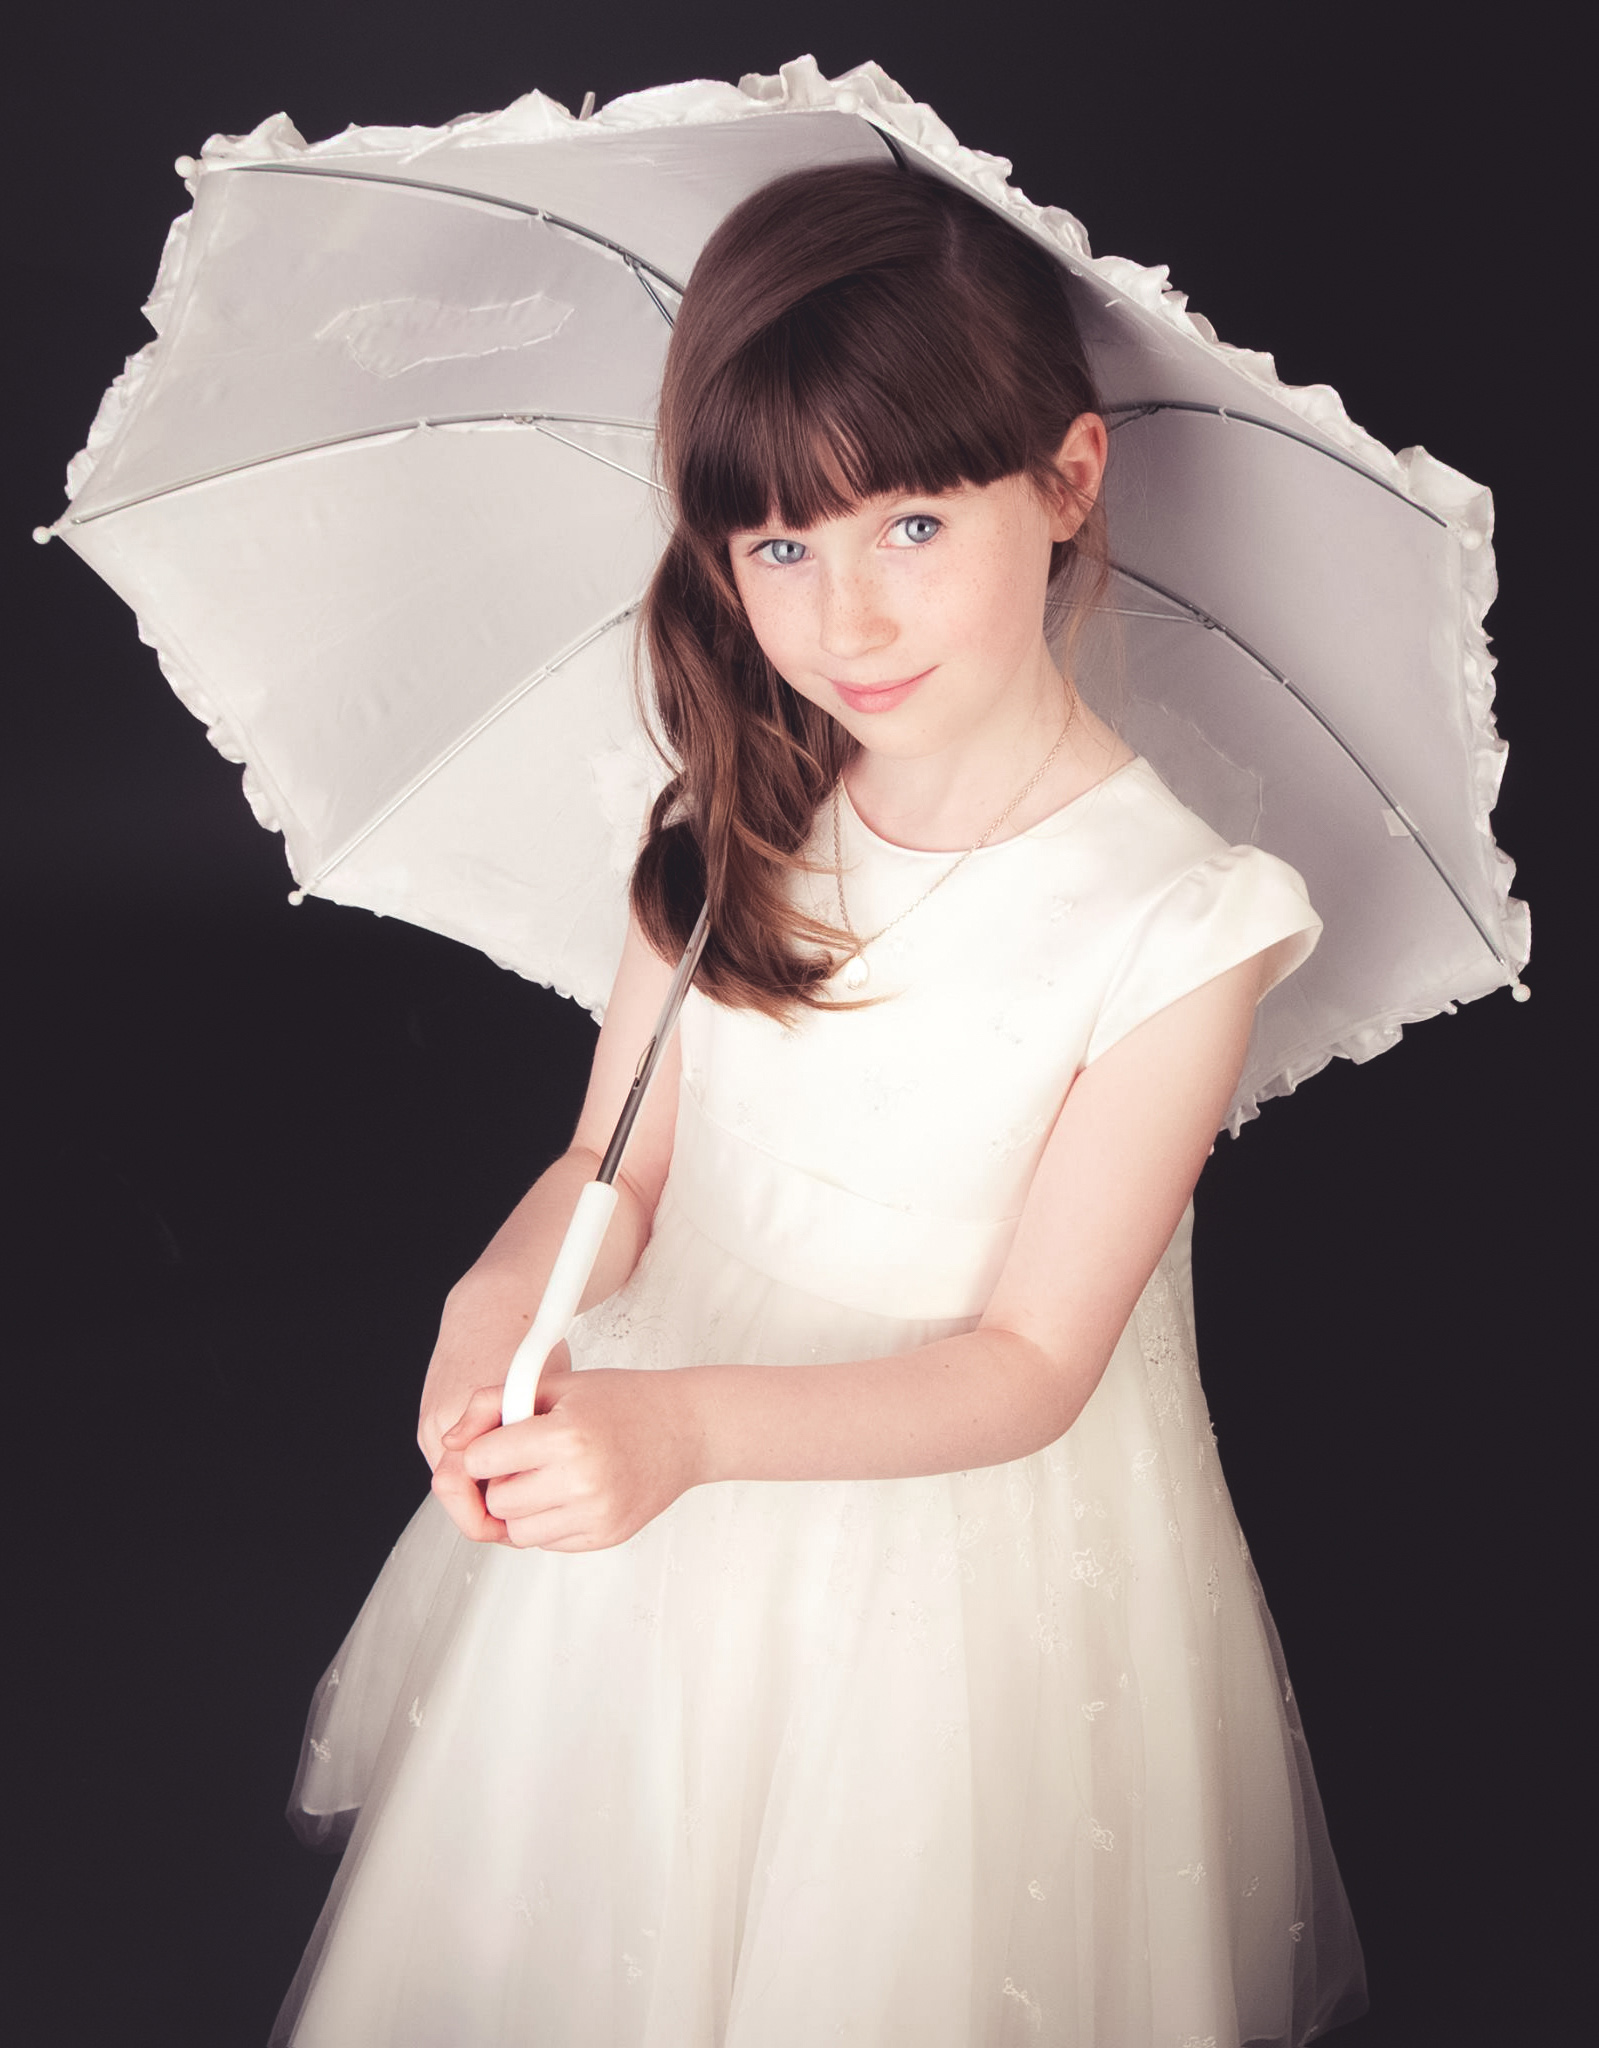 derry-londonderry-donegal-communion-confirmation-photography.jpg